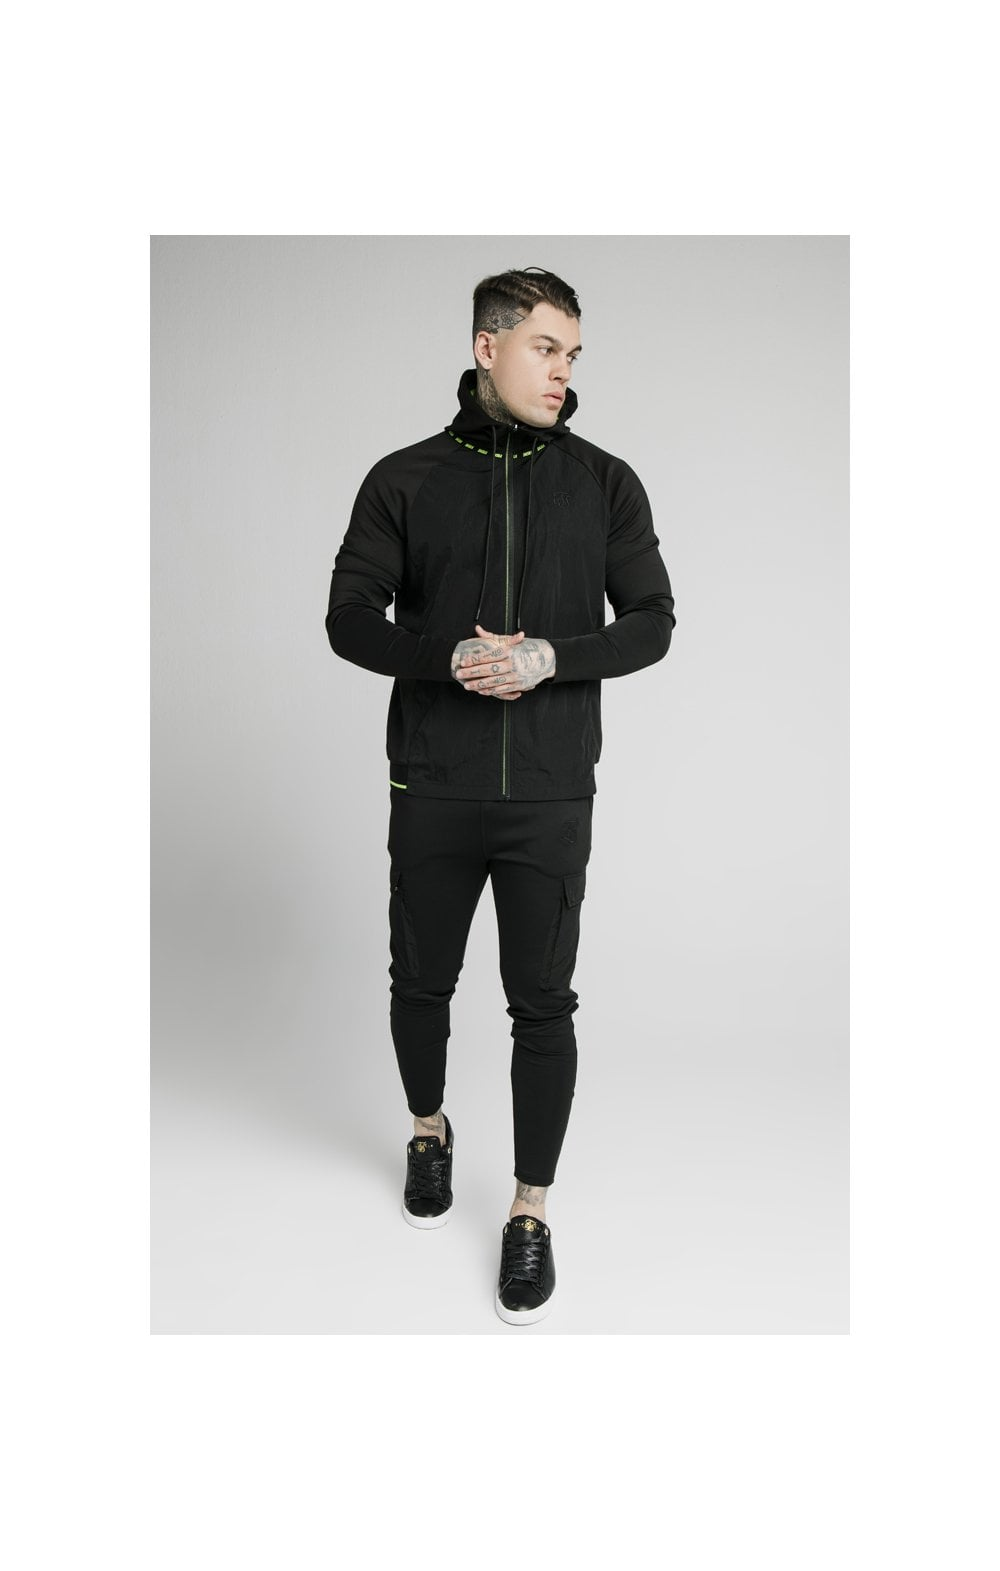 SikSilk Adapt Crushed Nylon Zip Through – Black (5)